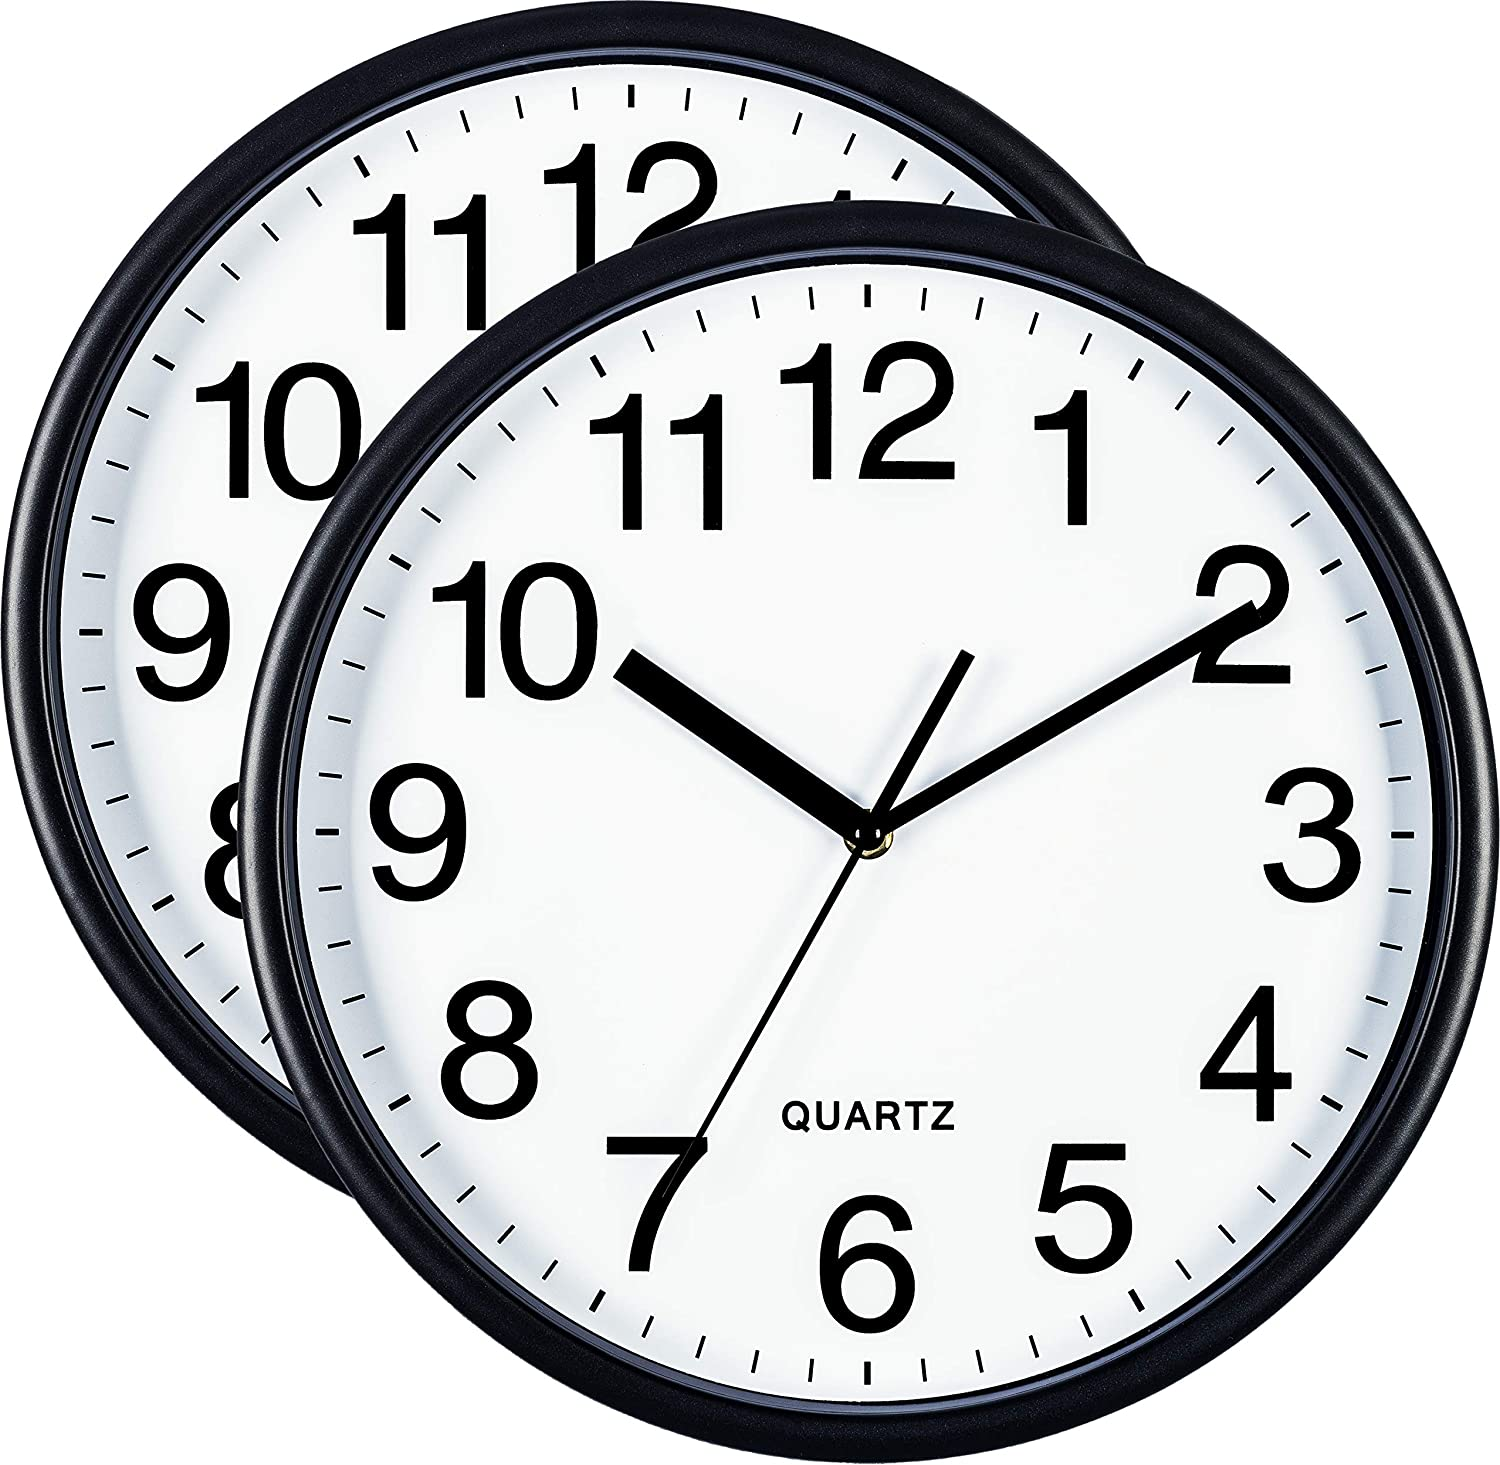 Bernhard Products Black Wall Clocks Large 13 Inch, Silent Non Ticking 2 Pack, Quality Quartz Battery Operated Round Easy to Read Home/Office/Business/Classroom/School Clock (2, 13 Inch)